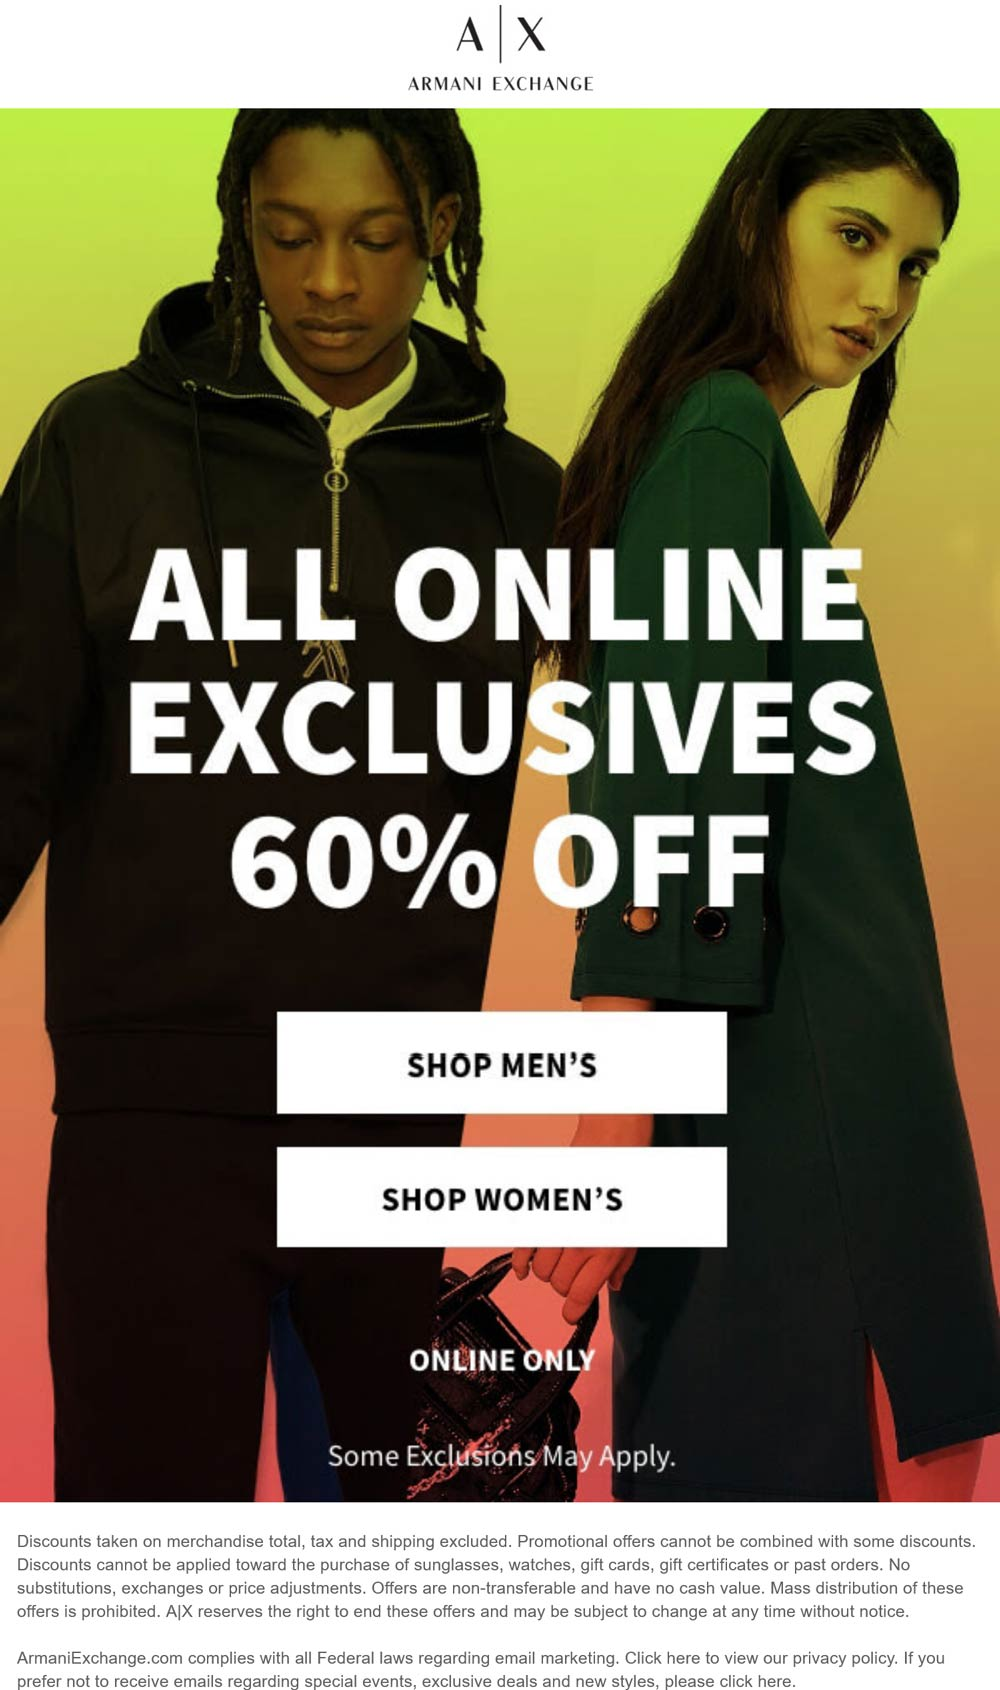 Armani Exchange stores Coupon  60% off all online exclusives at Armani Exchange #armaniexchange